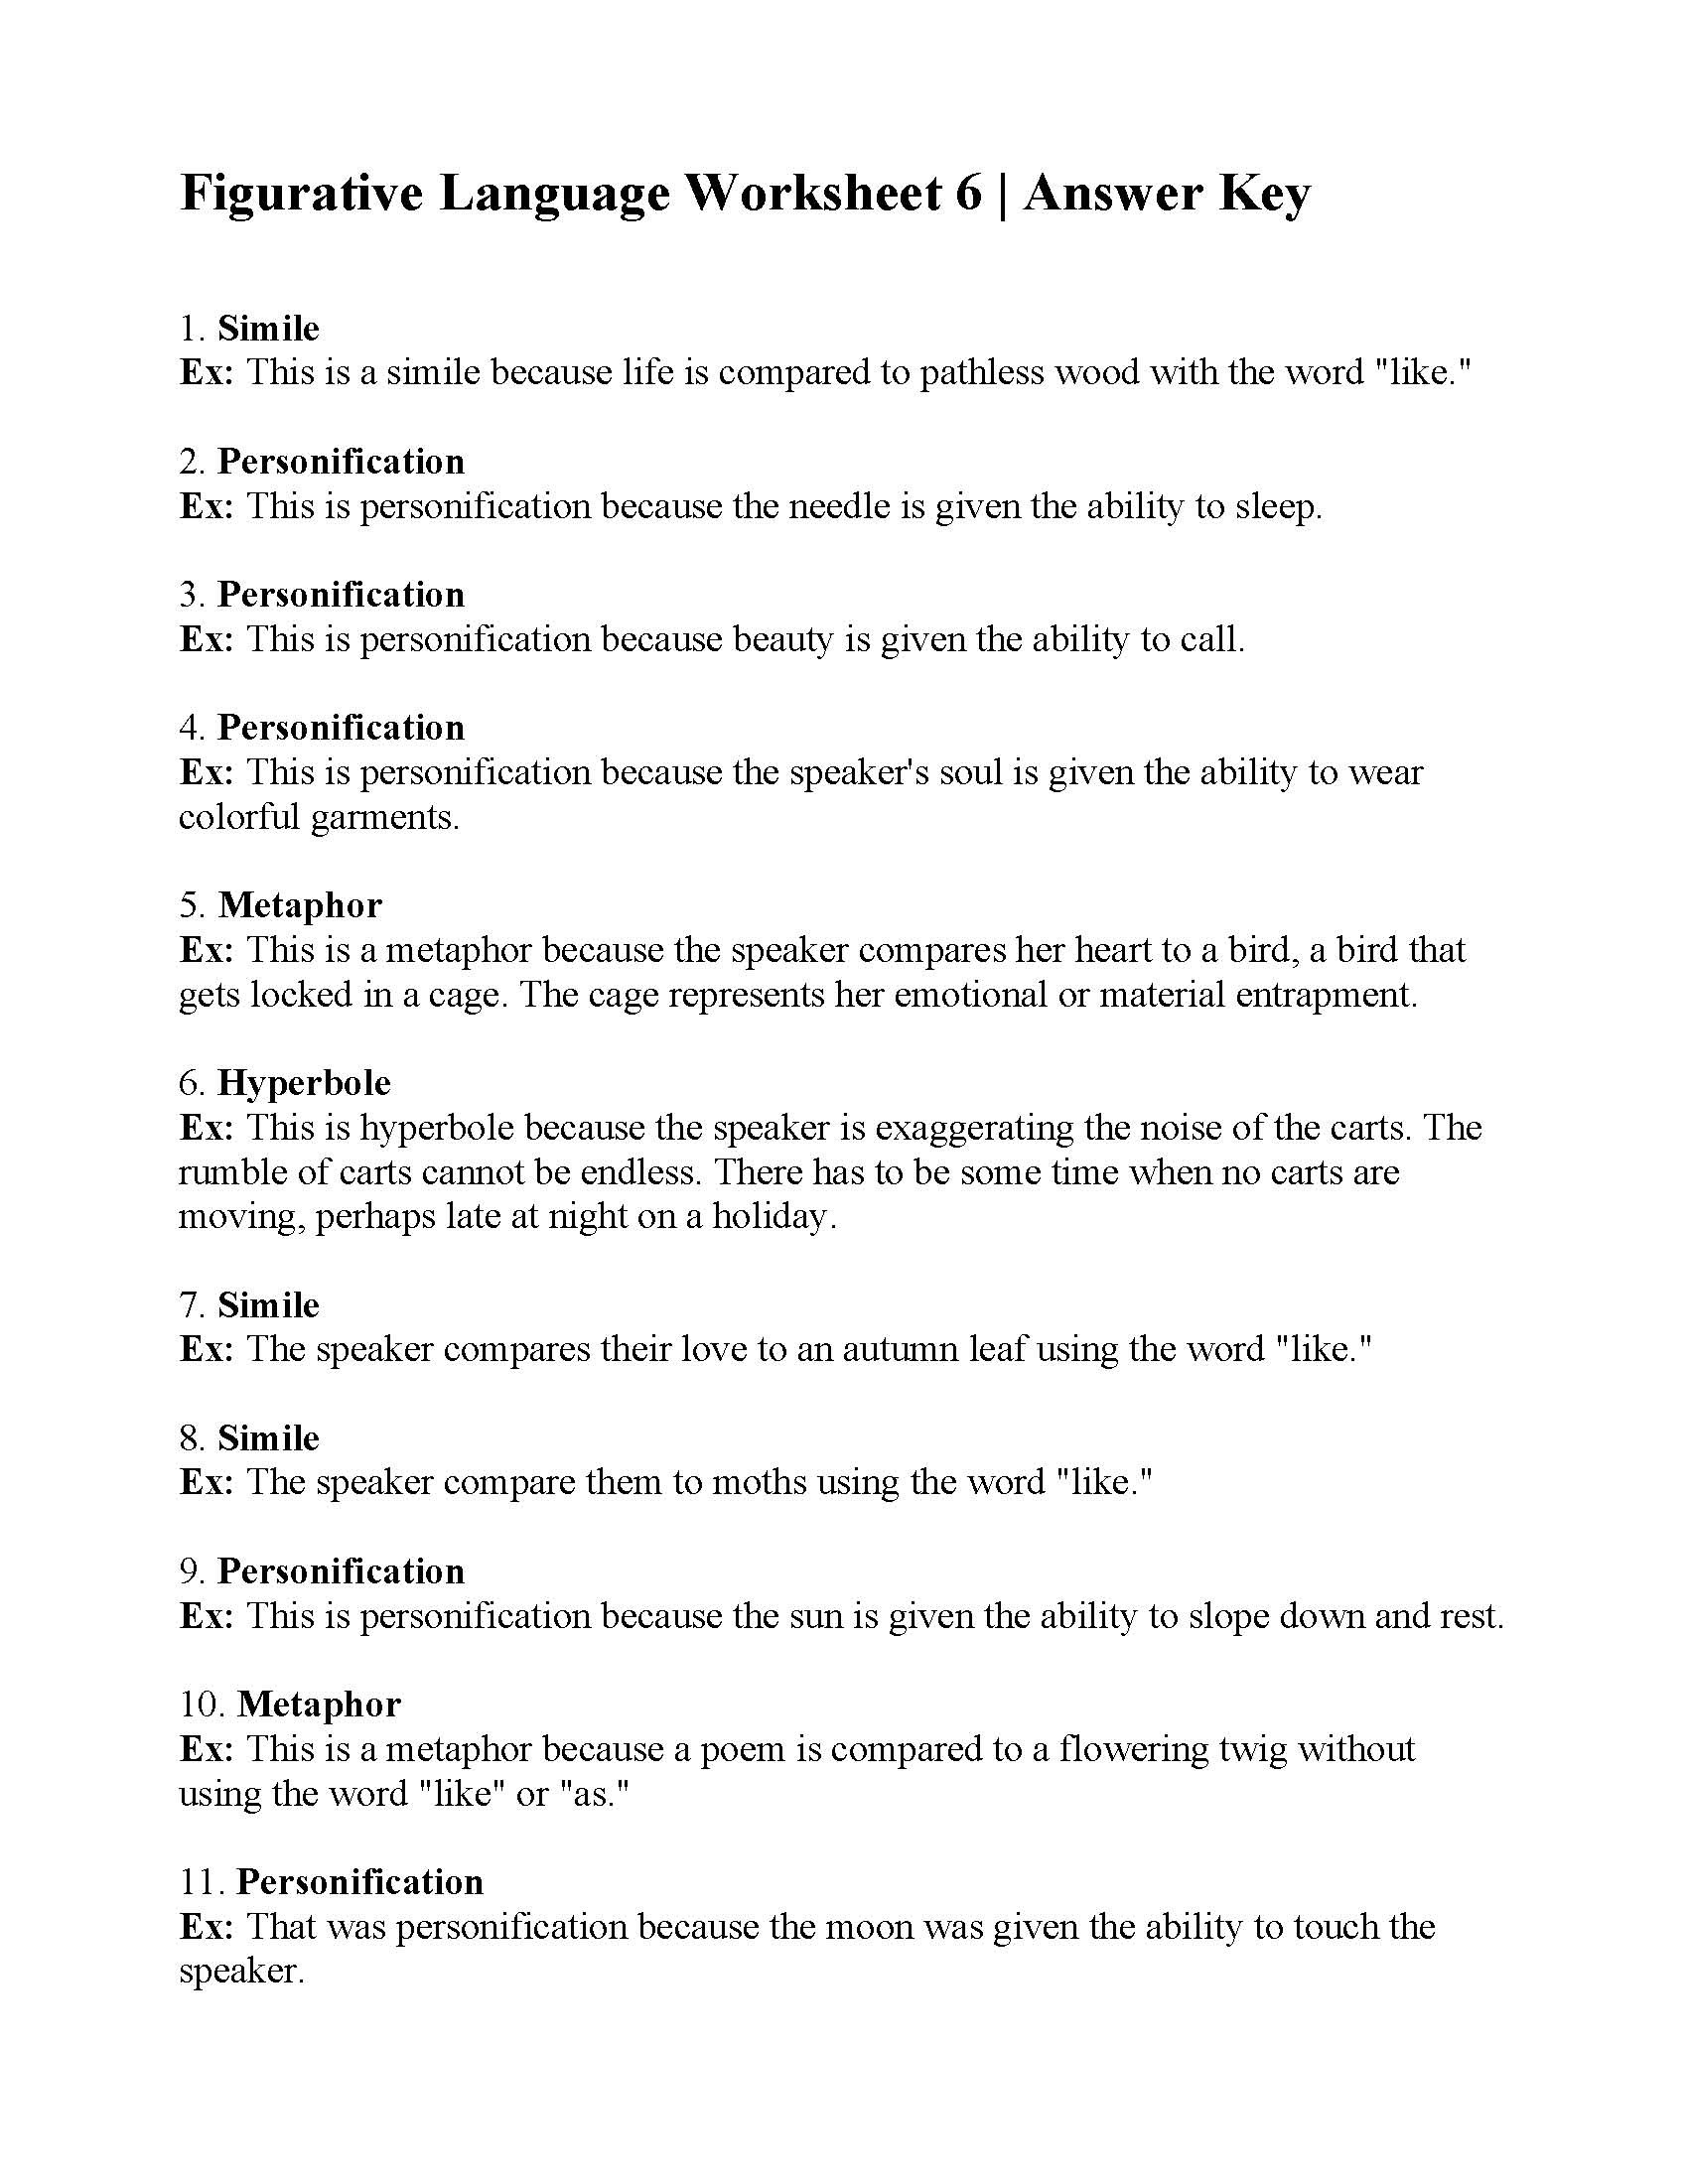 Personification Worksheets 6th Grade Figurative Language Worksheet 6